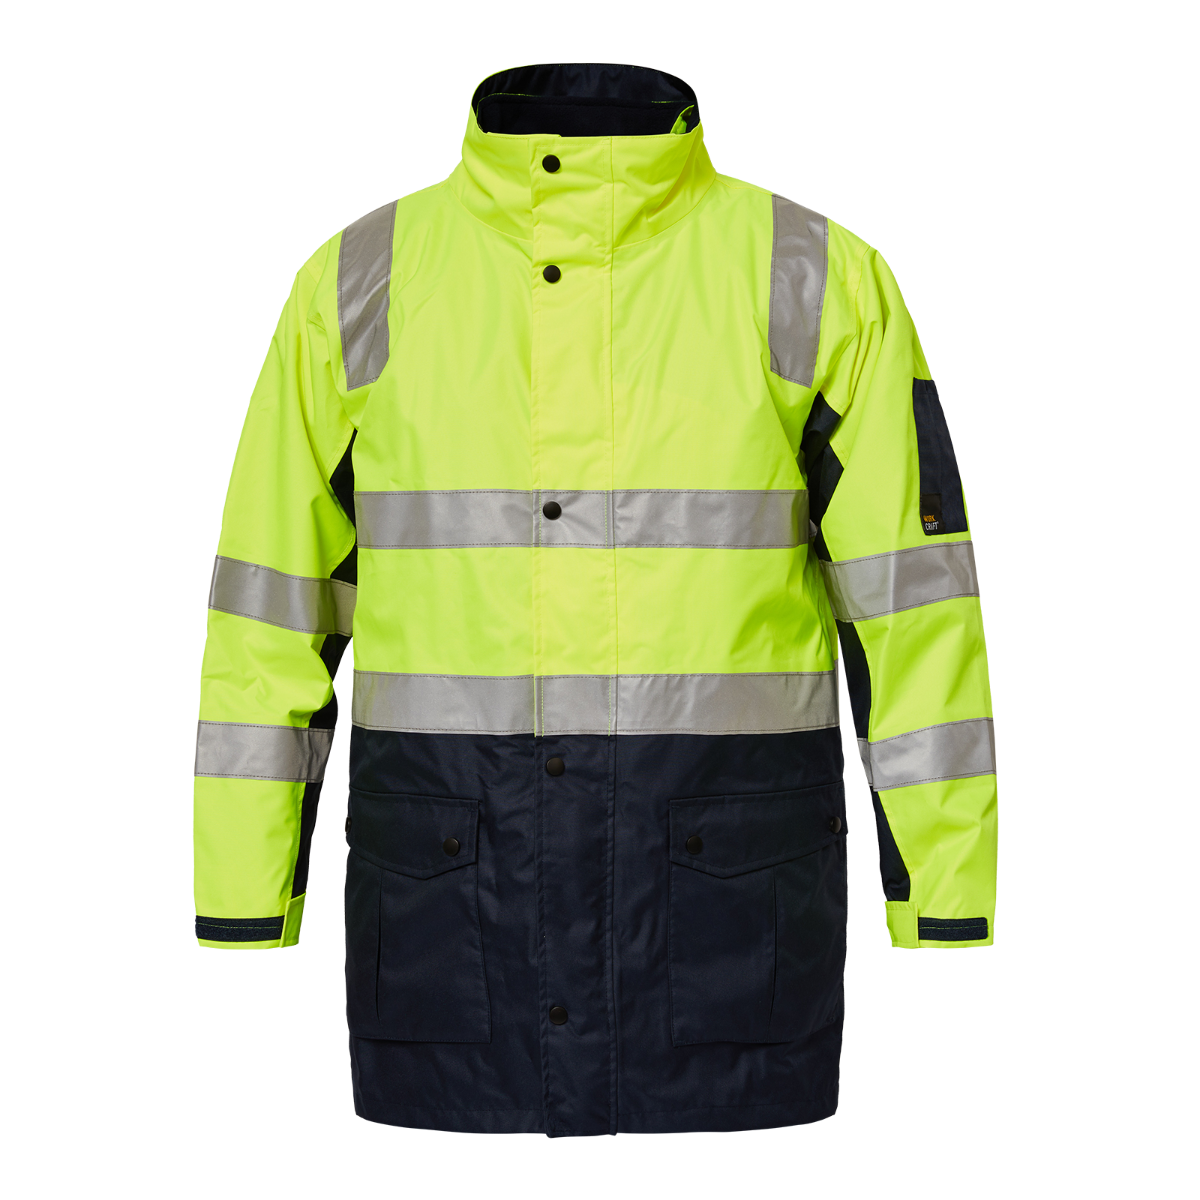 WorkCraft Tornado Hi Vis BioMotion-Taped 4-in-1 Jacket